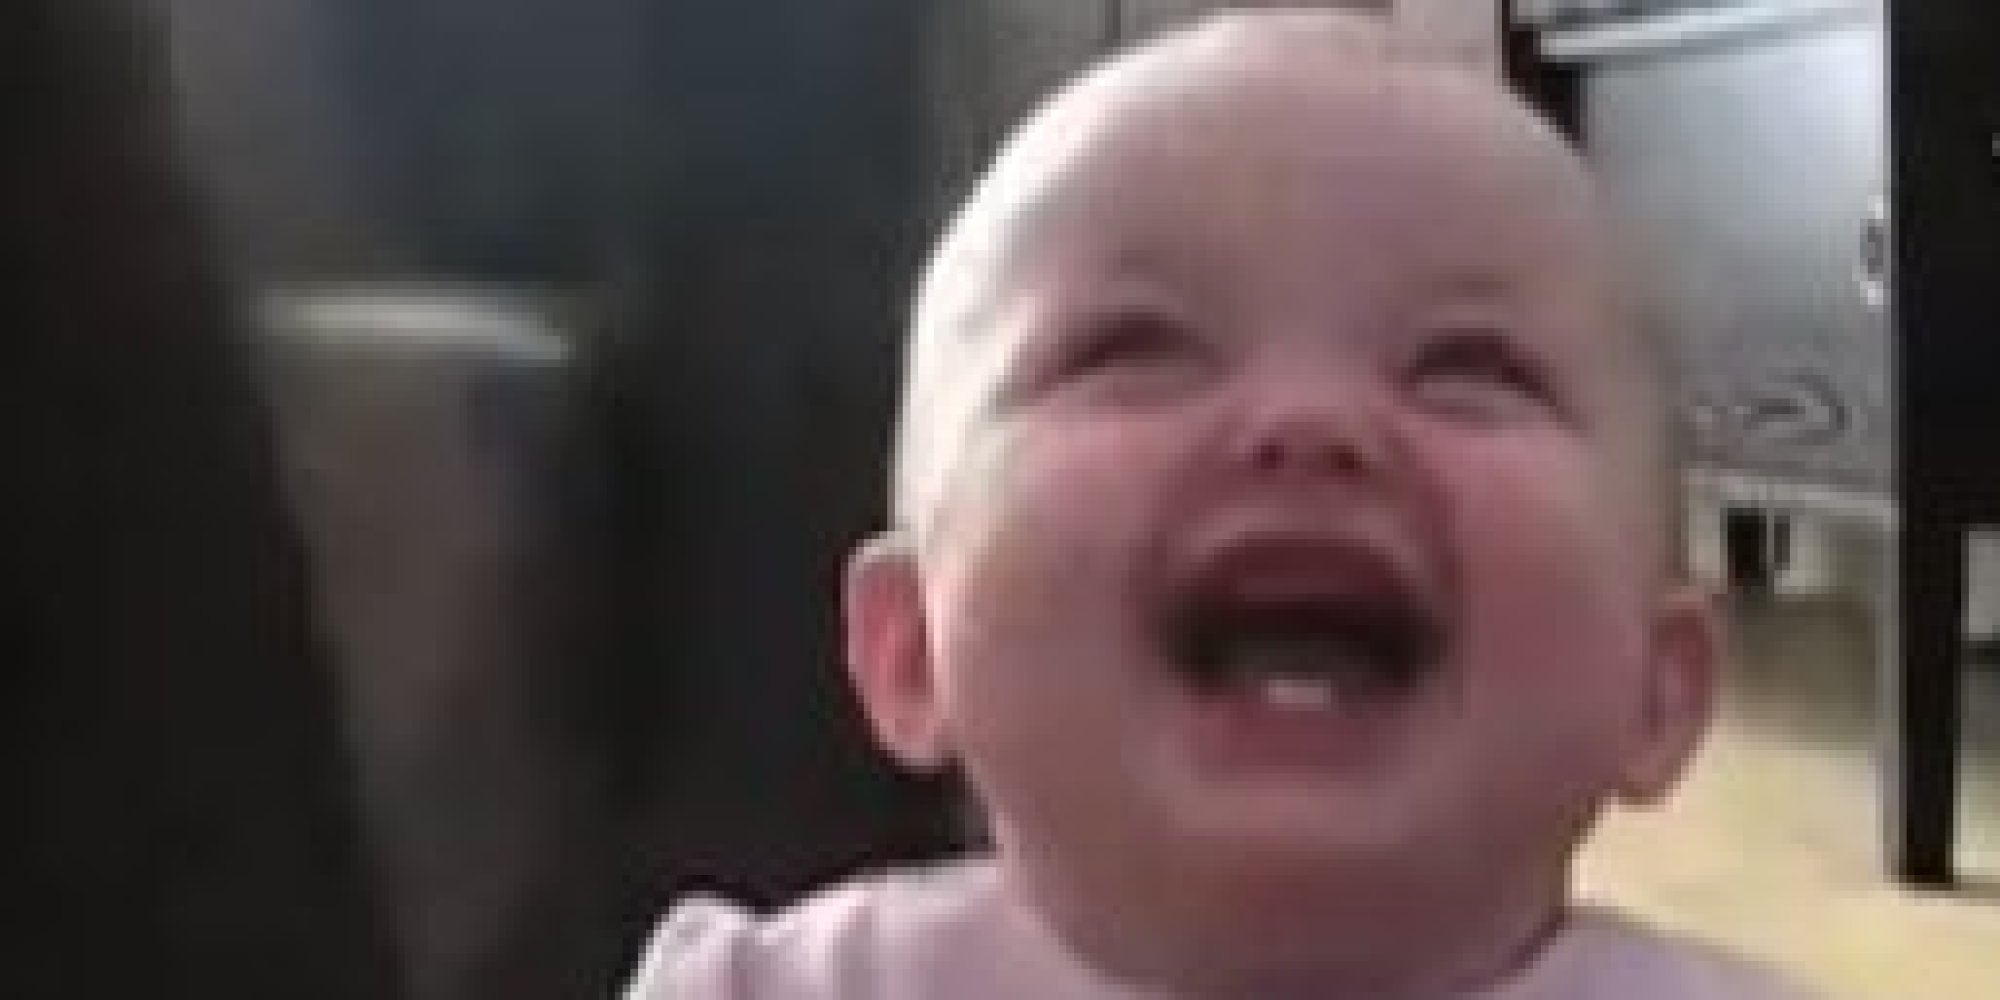 o BABY LAUGHING DOG facebook baby's uncontrollable laughter while watching a dog being fed